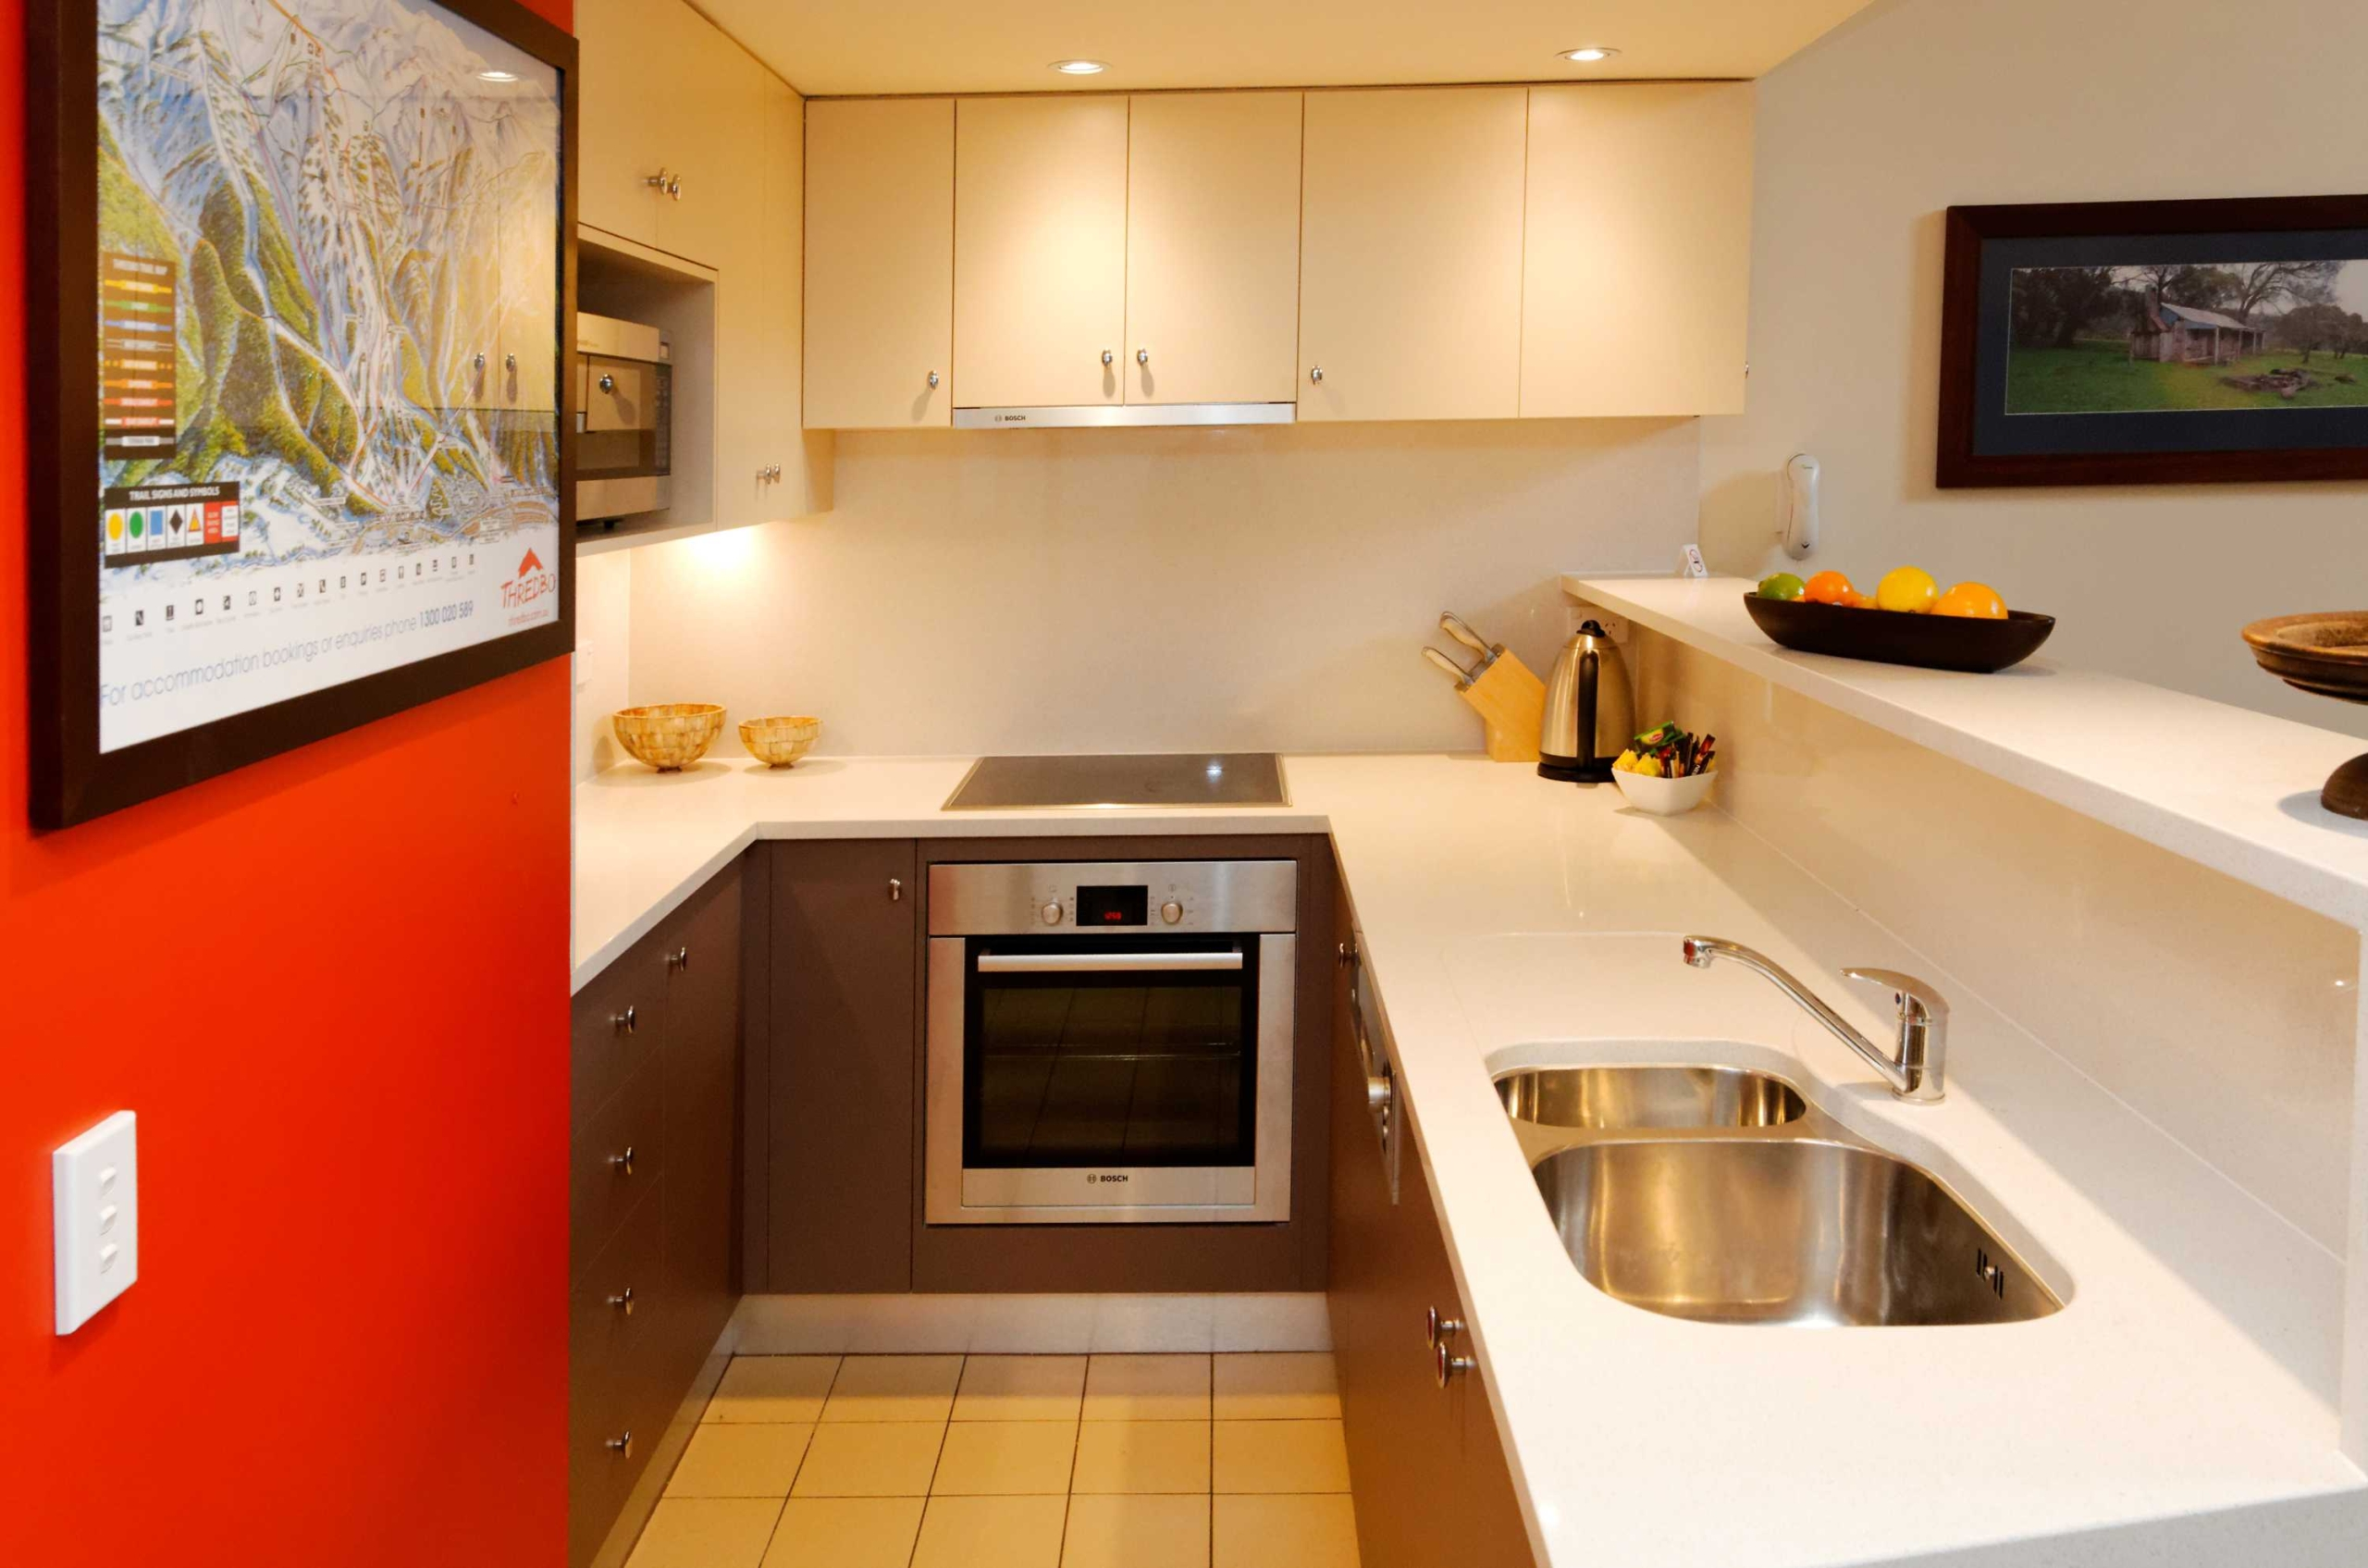 F10-Squatters-Run-Thredbo-Luxury-Apartments-1-Bed-Loft-Deluxe-Room-345-persons-see-squatters.com_.au--scaled